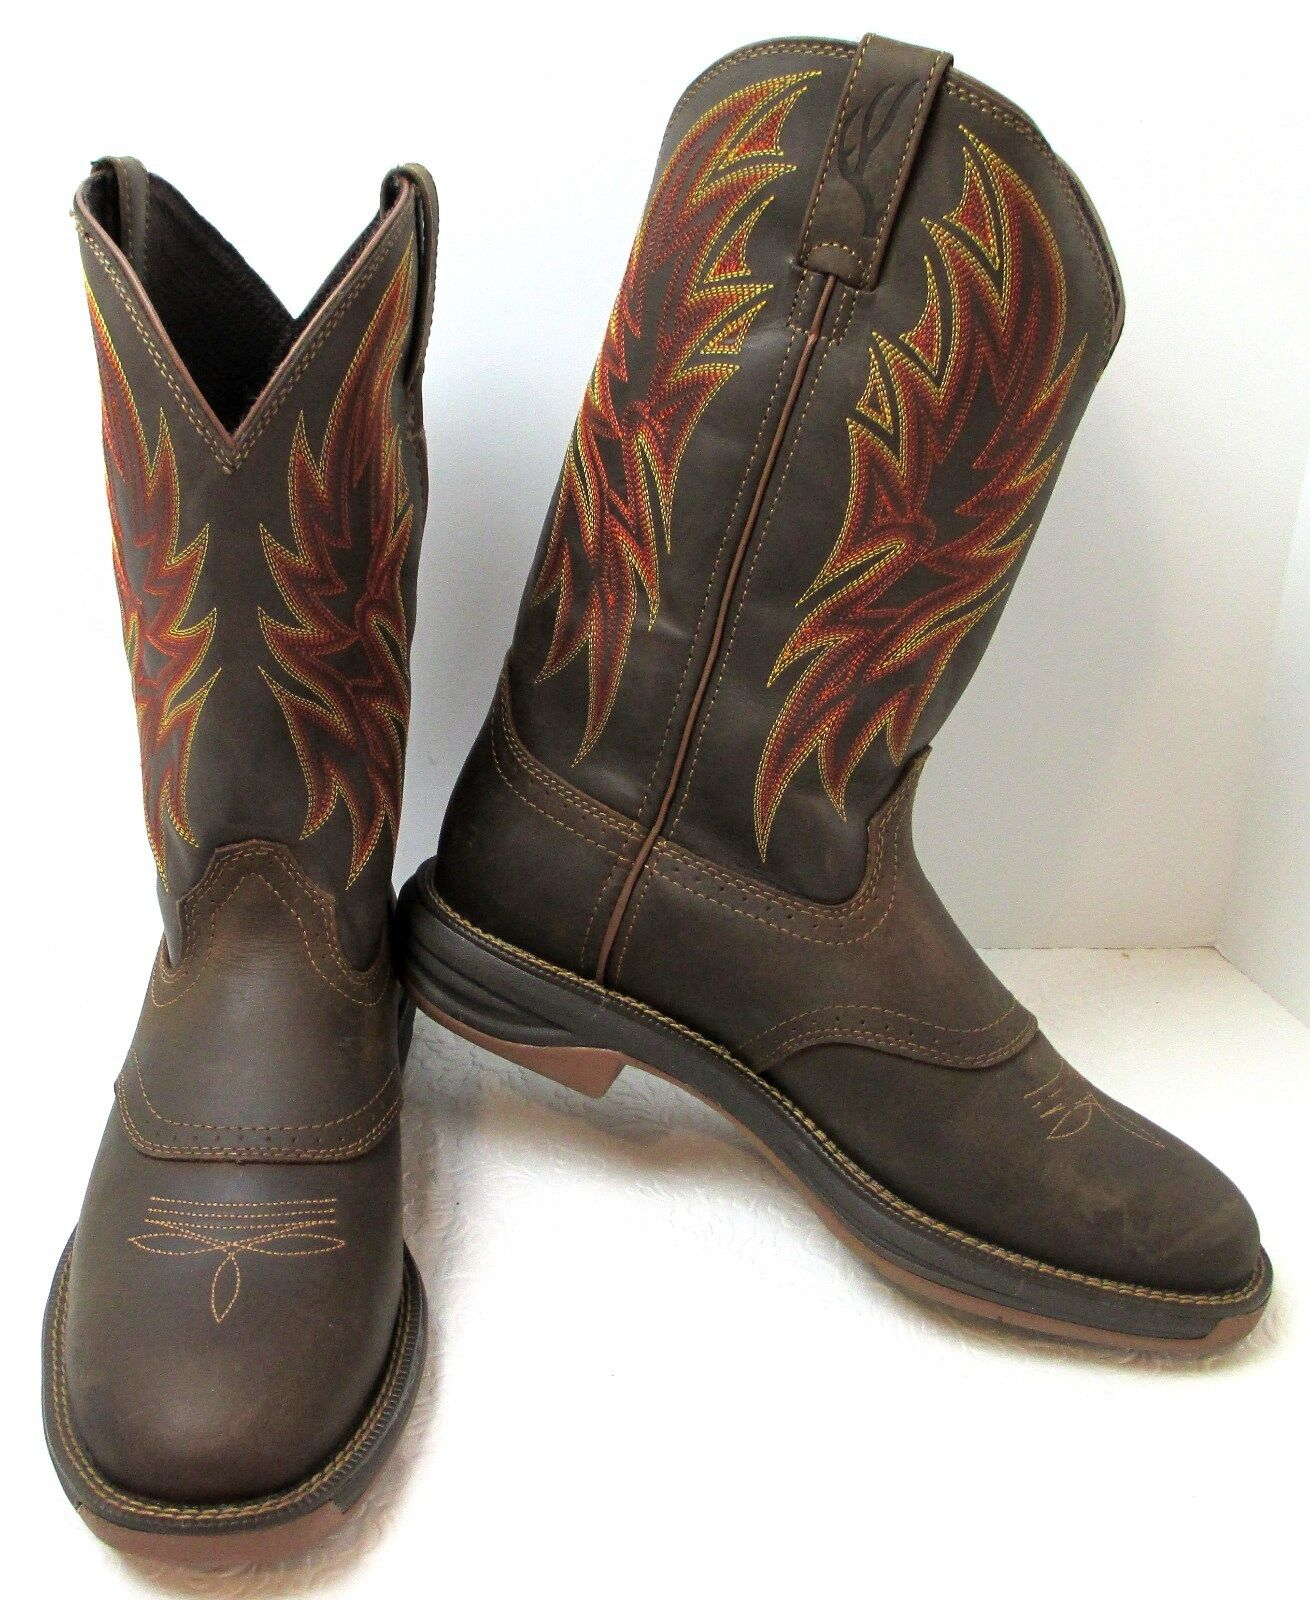 Men's Cabela's Big Casino Square-Toe Tobacco / Hickory Leather Cowboy Boots